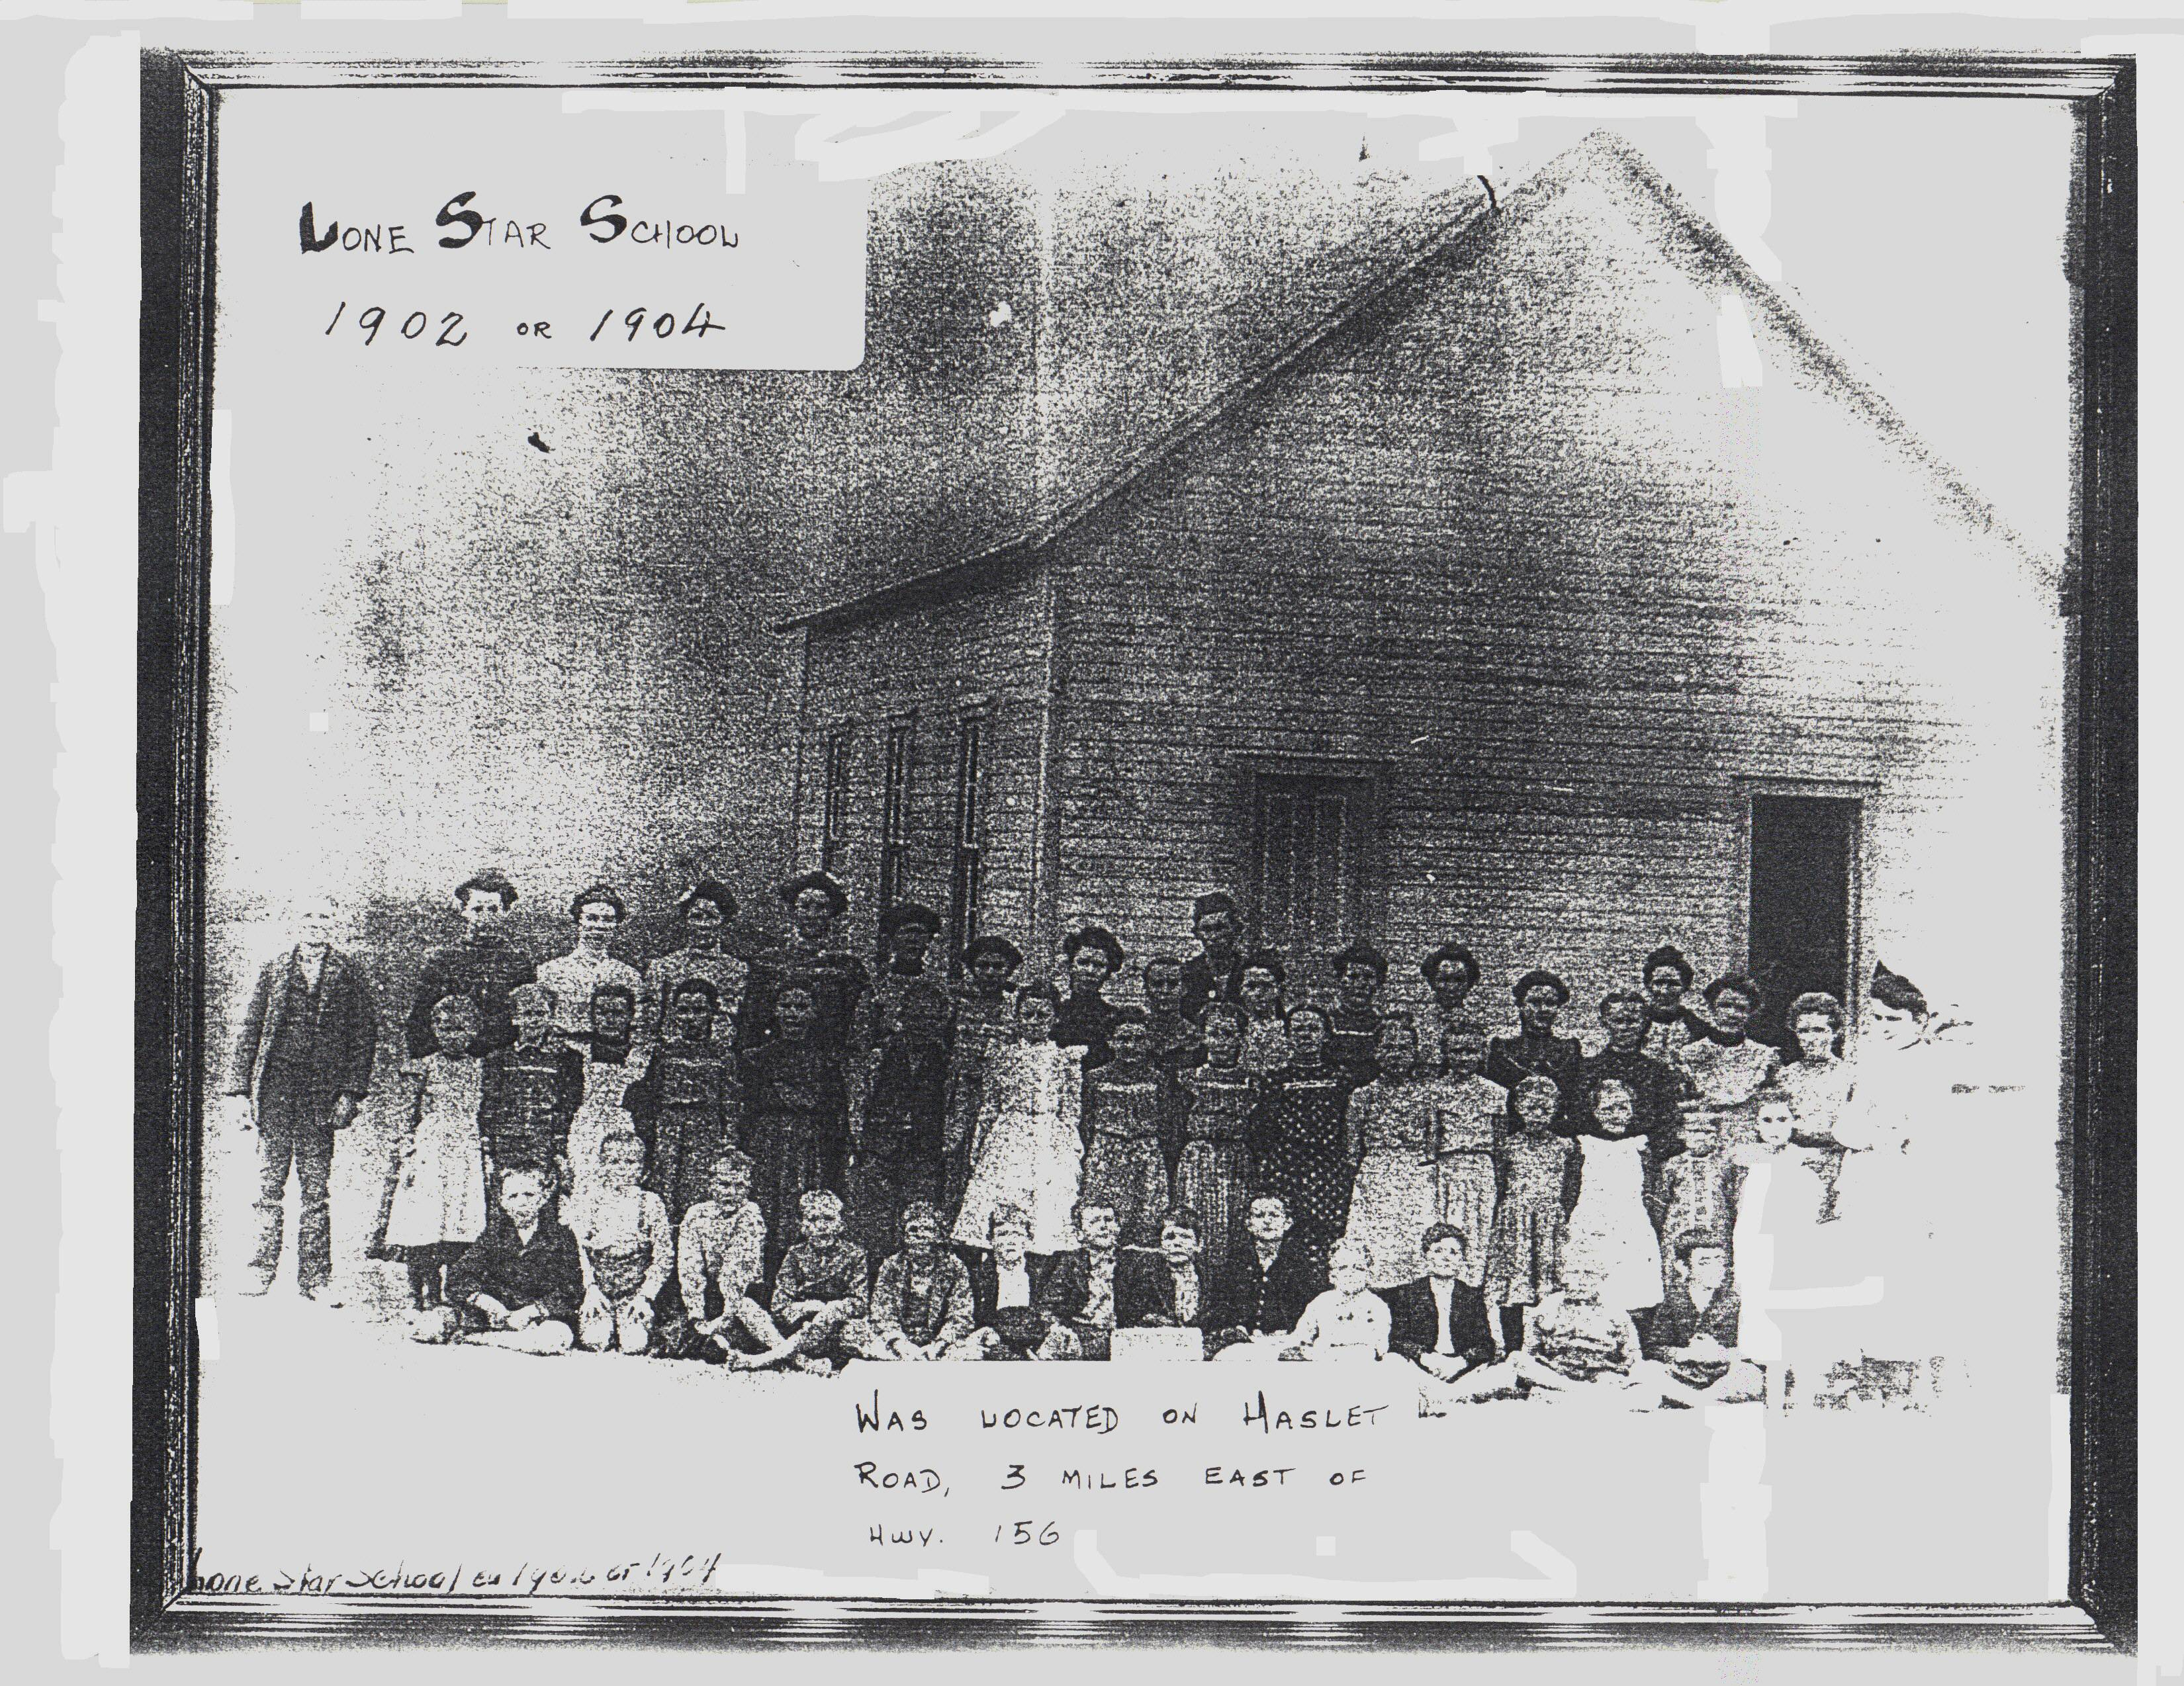 Lone Star School   1902   or  1904